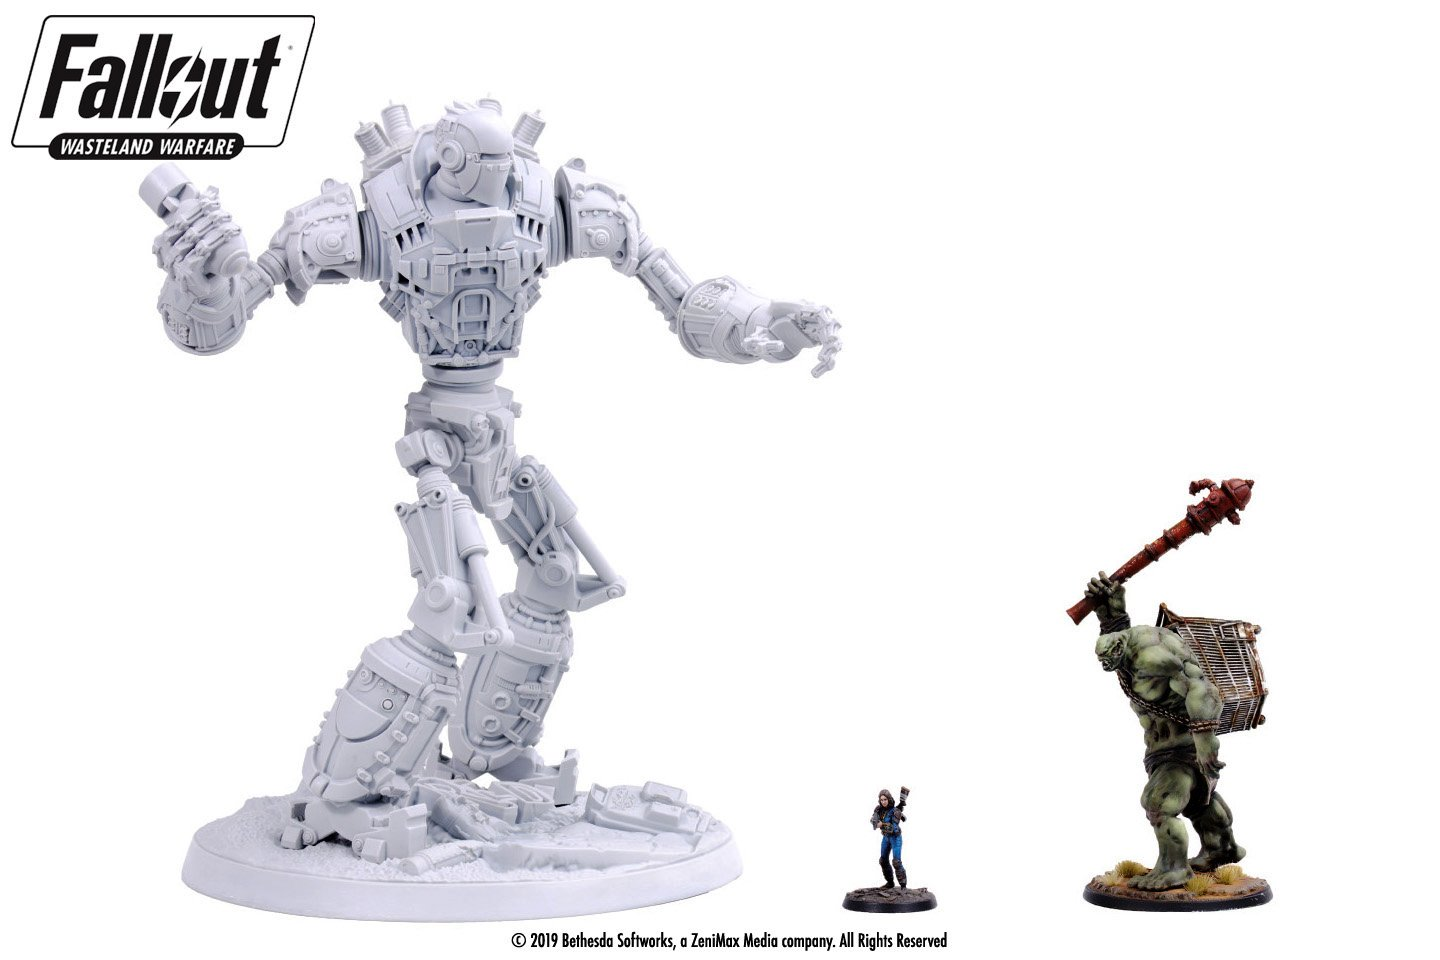 A miniature Liberty Prime from Fallout 4 shown to scale with the Sole Survivor and a Super Mutant Behemoth miniatures for scale